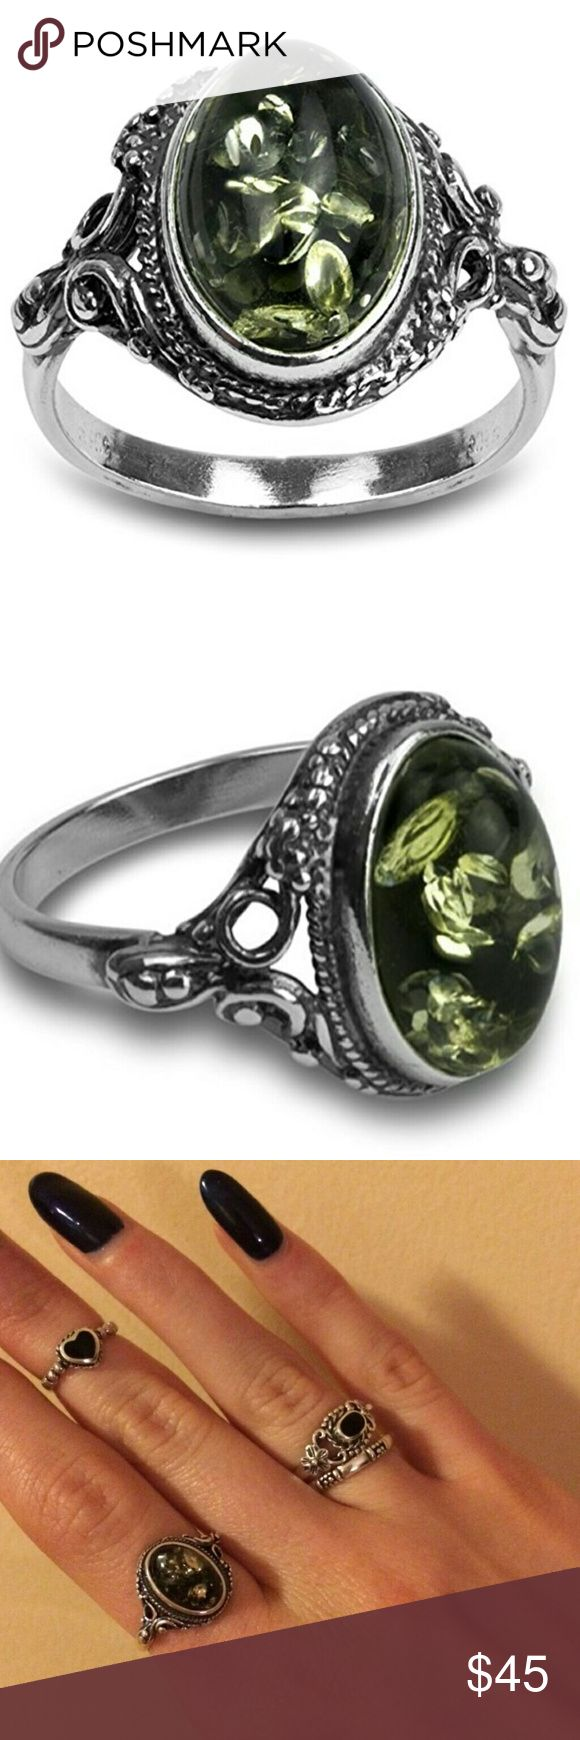 Baltic Sea Green Amber Sterling Ring Amber helps to balance the emotions, clear the mind and release negative energy. It aids manifestation, eases stress by clearing phobias and fears, and it is a lovely warm stone to wear. It is a Potent Healer.   925 Sterling with an Antique Look setting Green (flakes have hints of yellow) Baltic Sea Amber  Height0.30 inches Width0.55 inches Stone Weight: 5 ct Stone Treatment Method: Heat&High-pressure, polish. True to size Comes in box  Tags: healing…